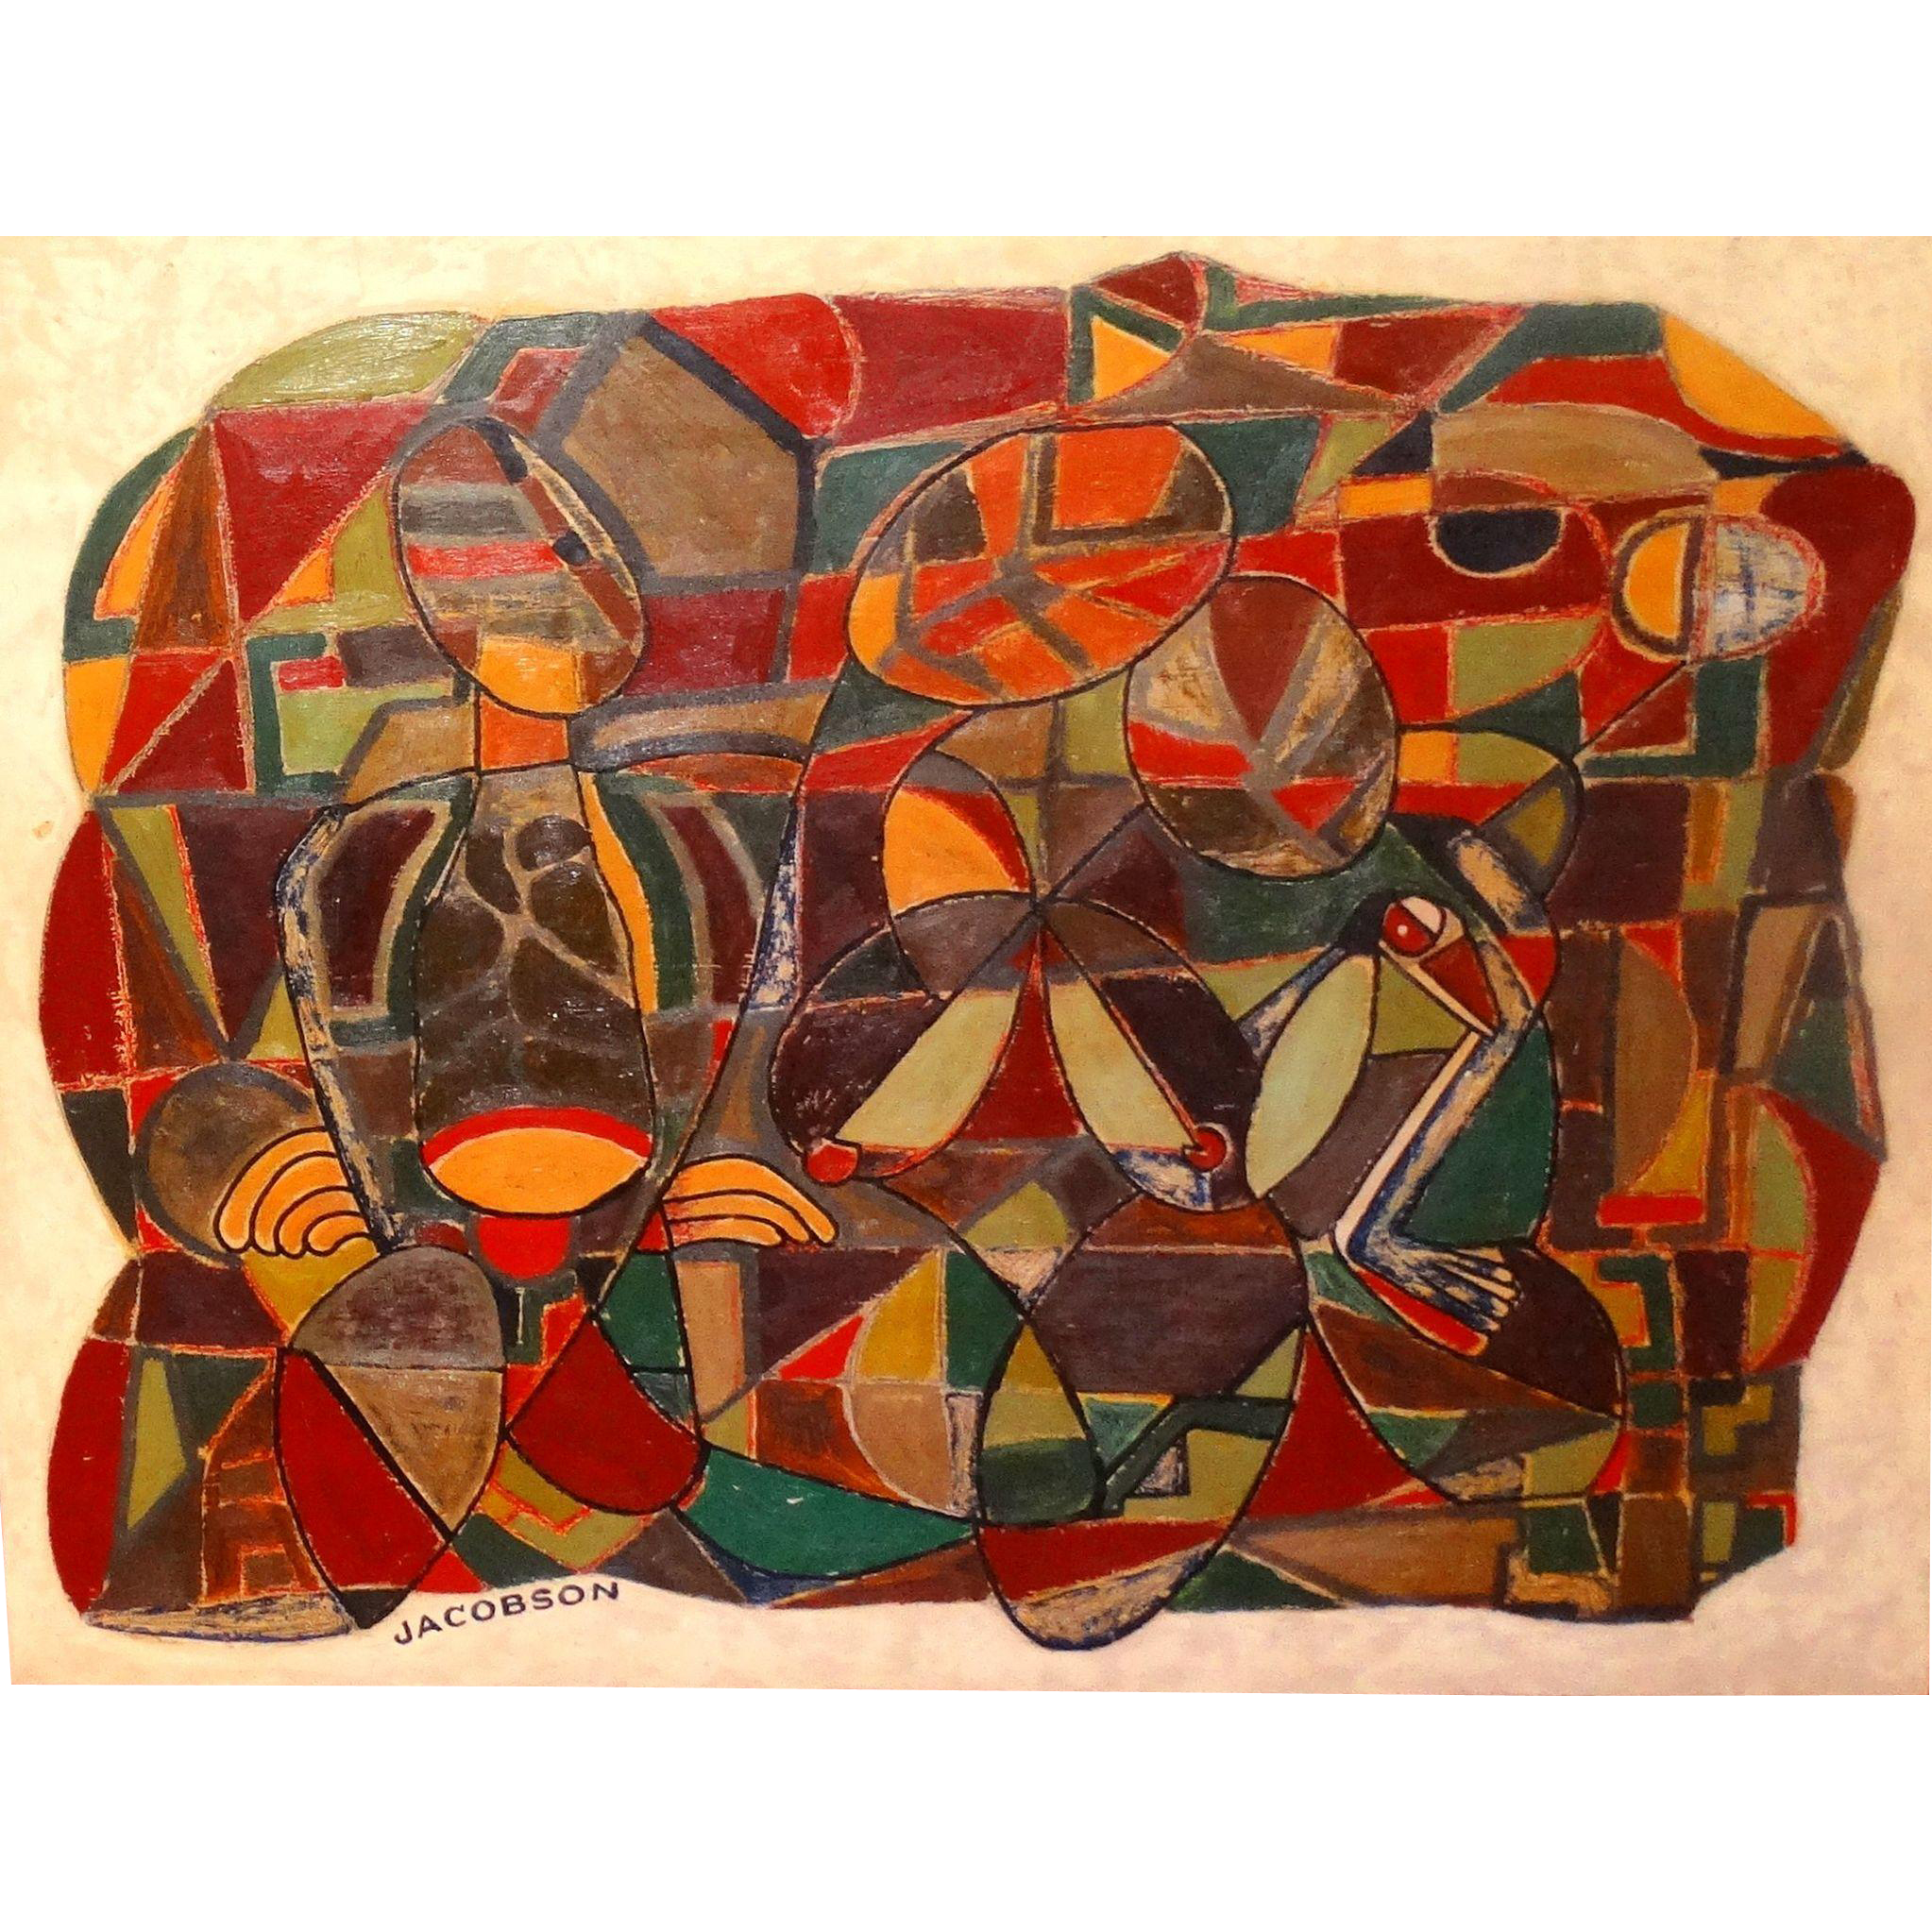 CHARLES R. JACOBSON (American 20th Century)  - Original Signed Mixed Media Abstract Painting On Wooden Panel